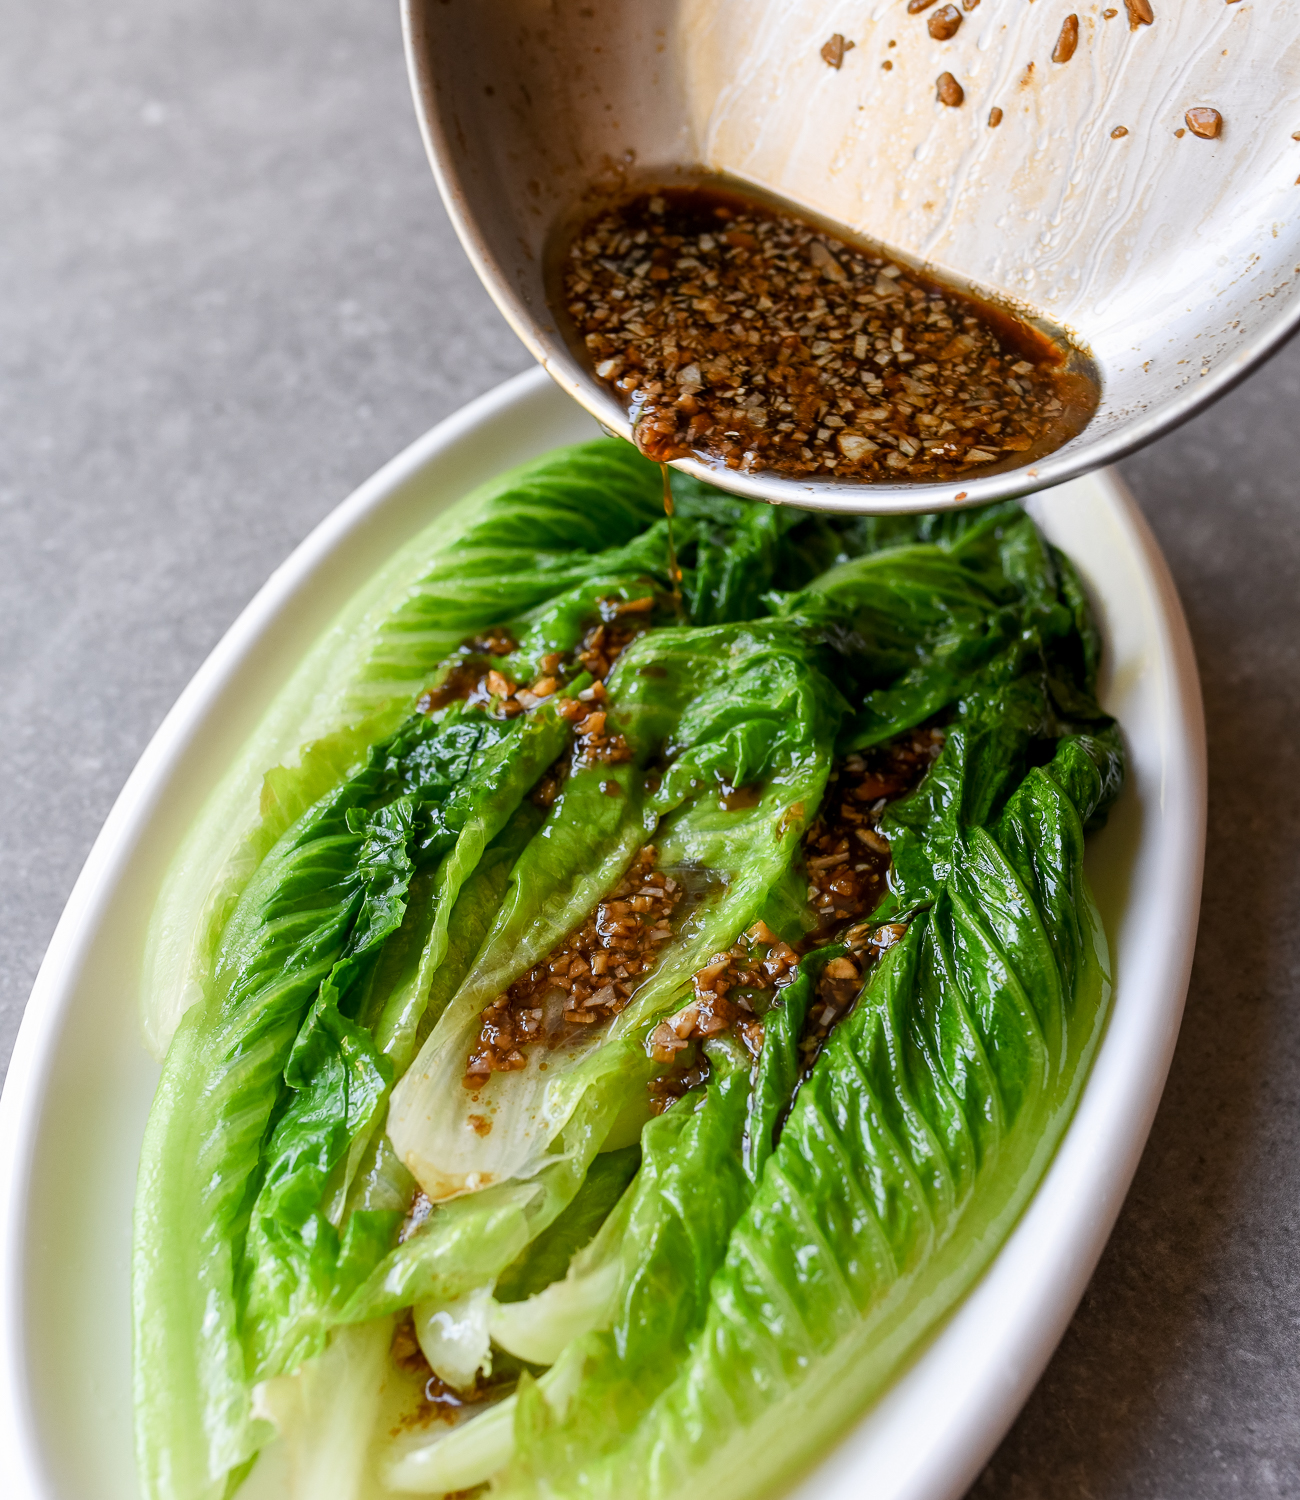 Pouring sauce over blanched romaine lettuce leaves